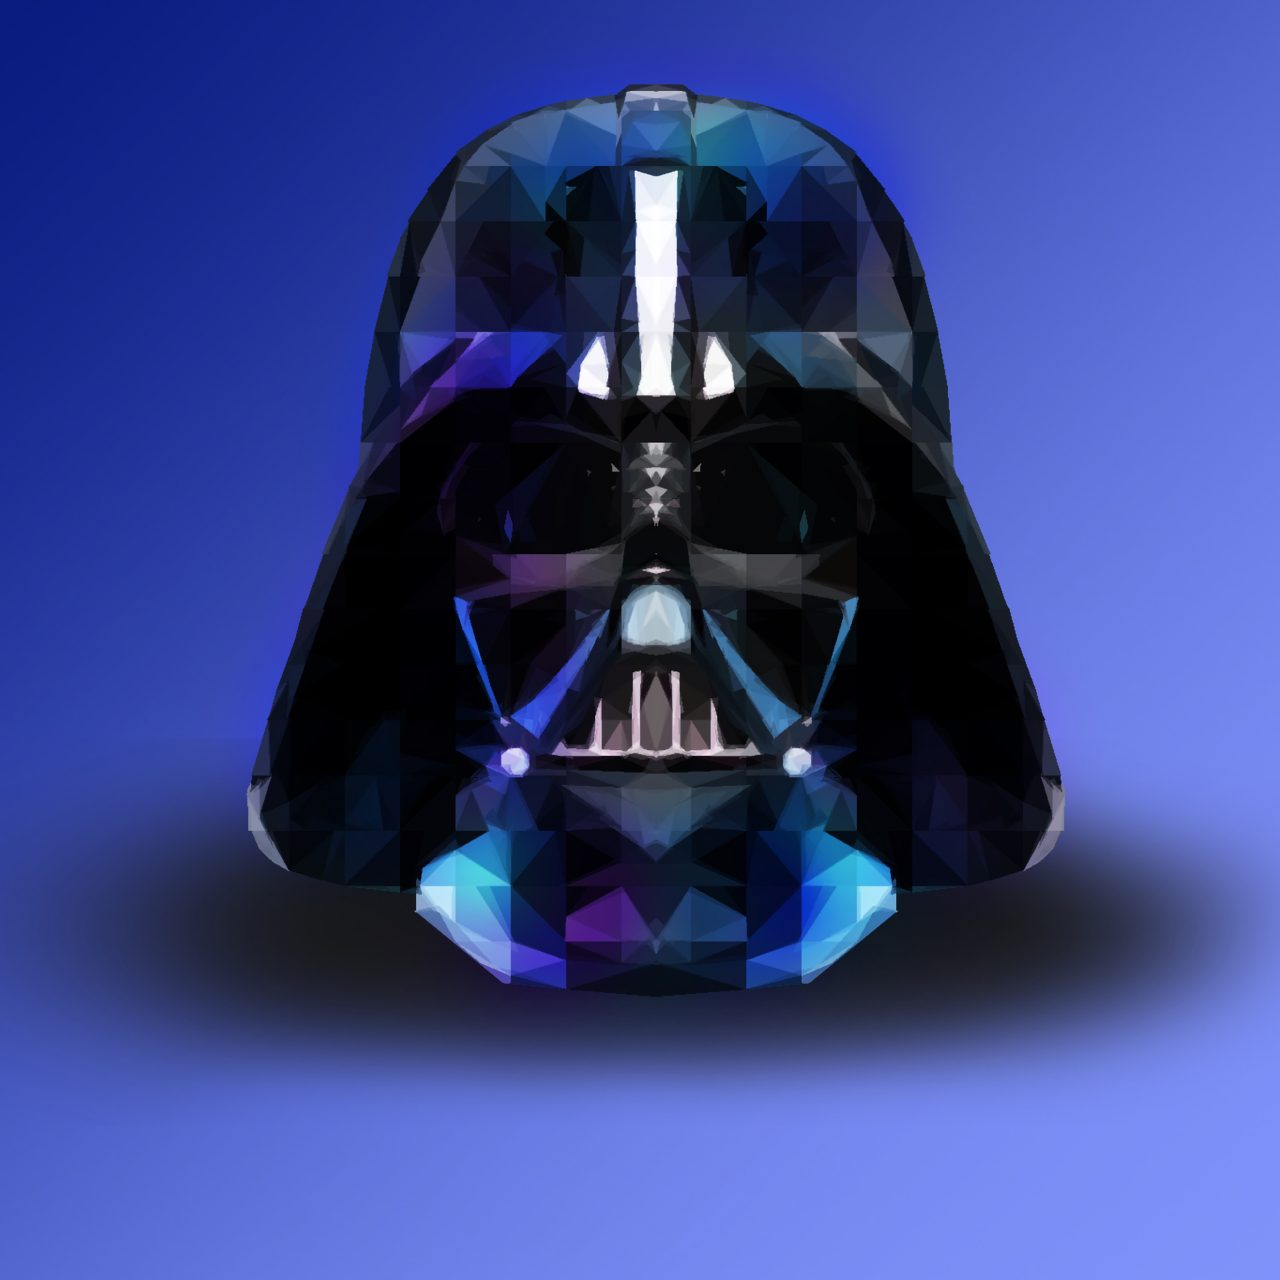 Darth Vader Star Wars Abstract 4K Wallpaper